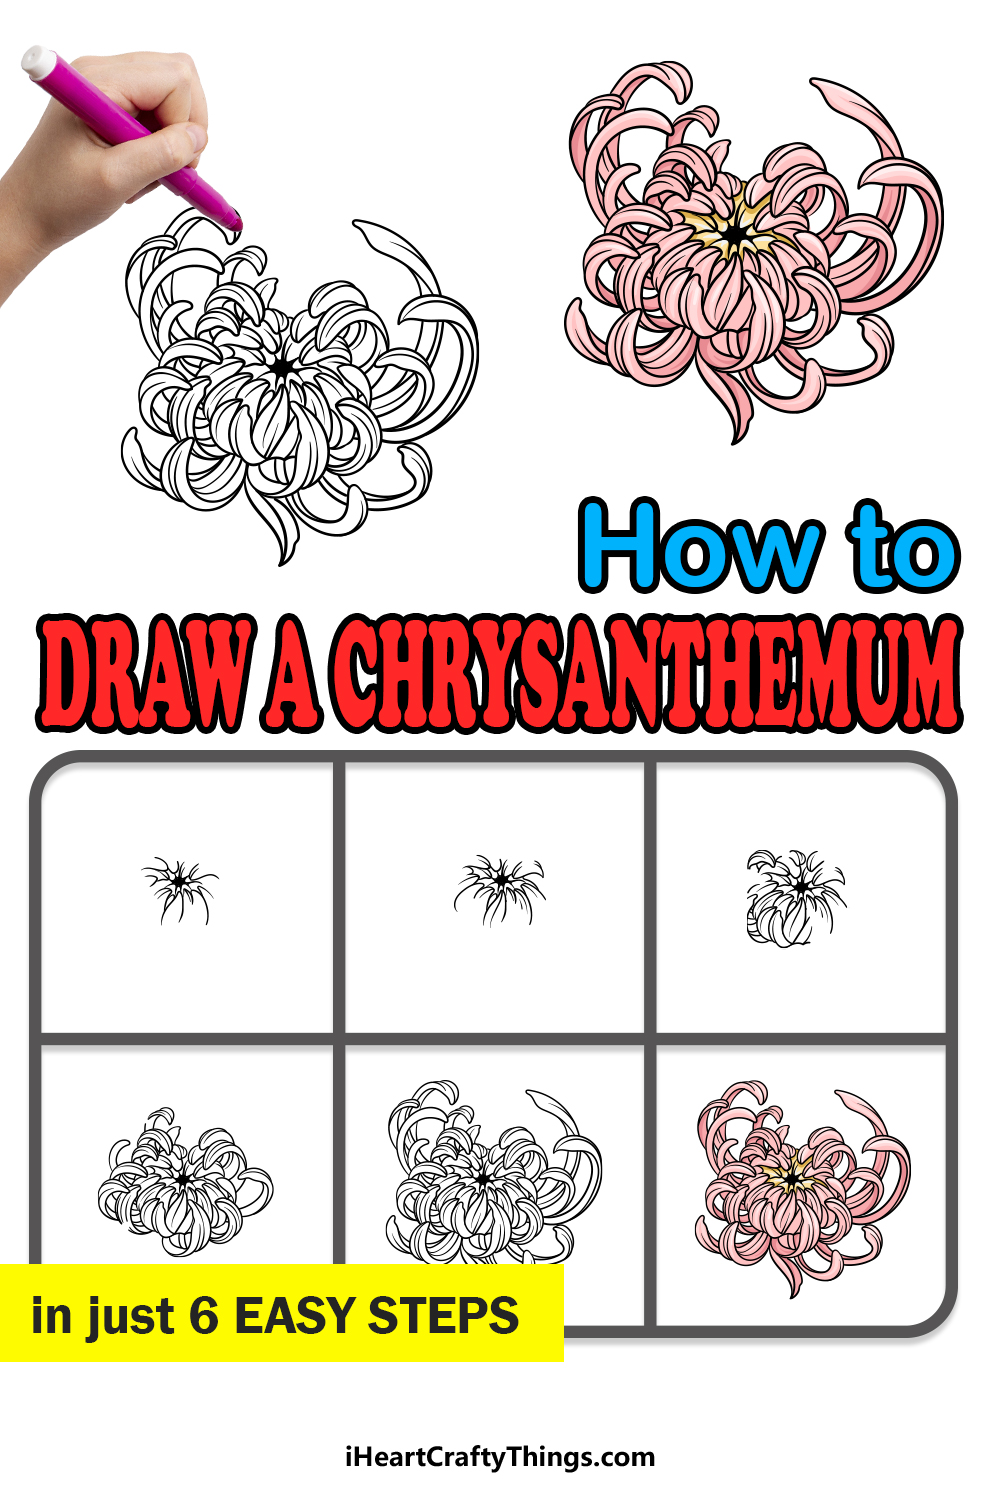 how to draw Chrysanthemum in 6 easy steps